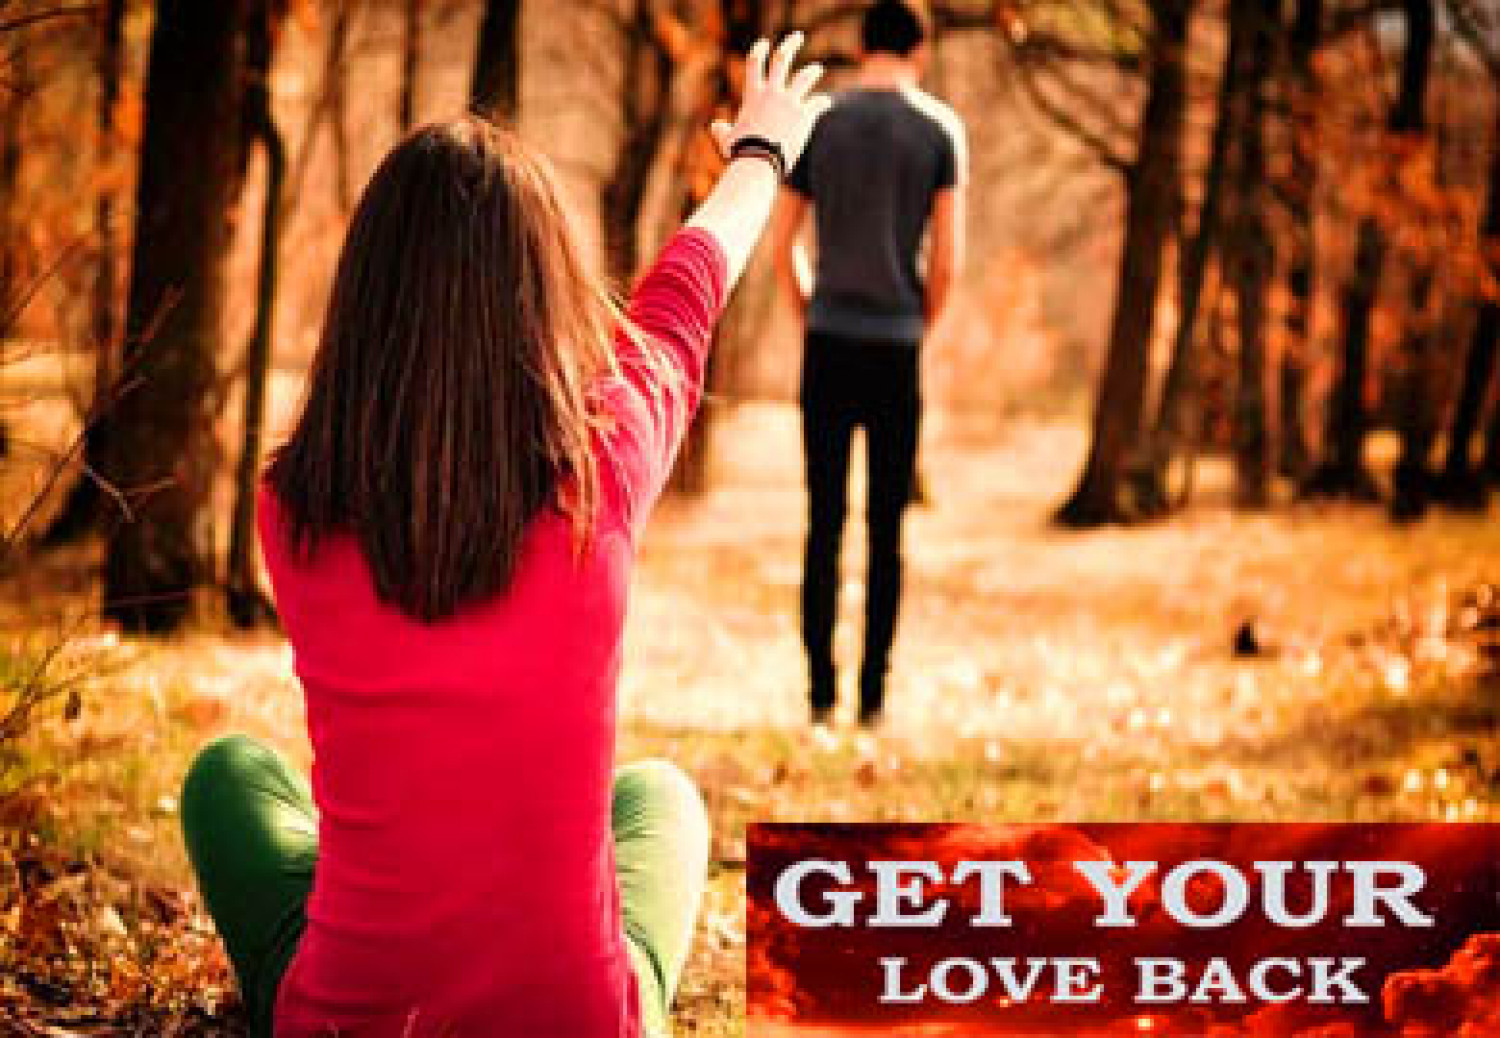 Get Lost Love Back By Vashikaran Infographic